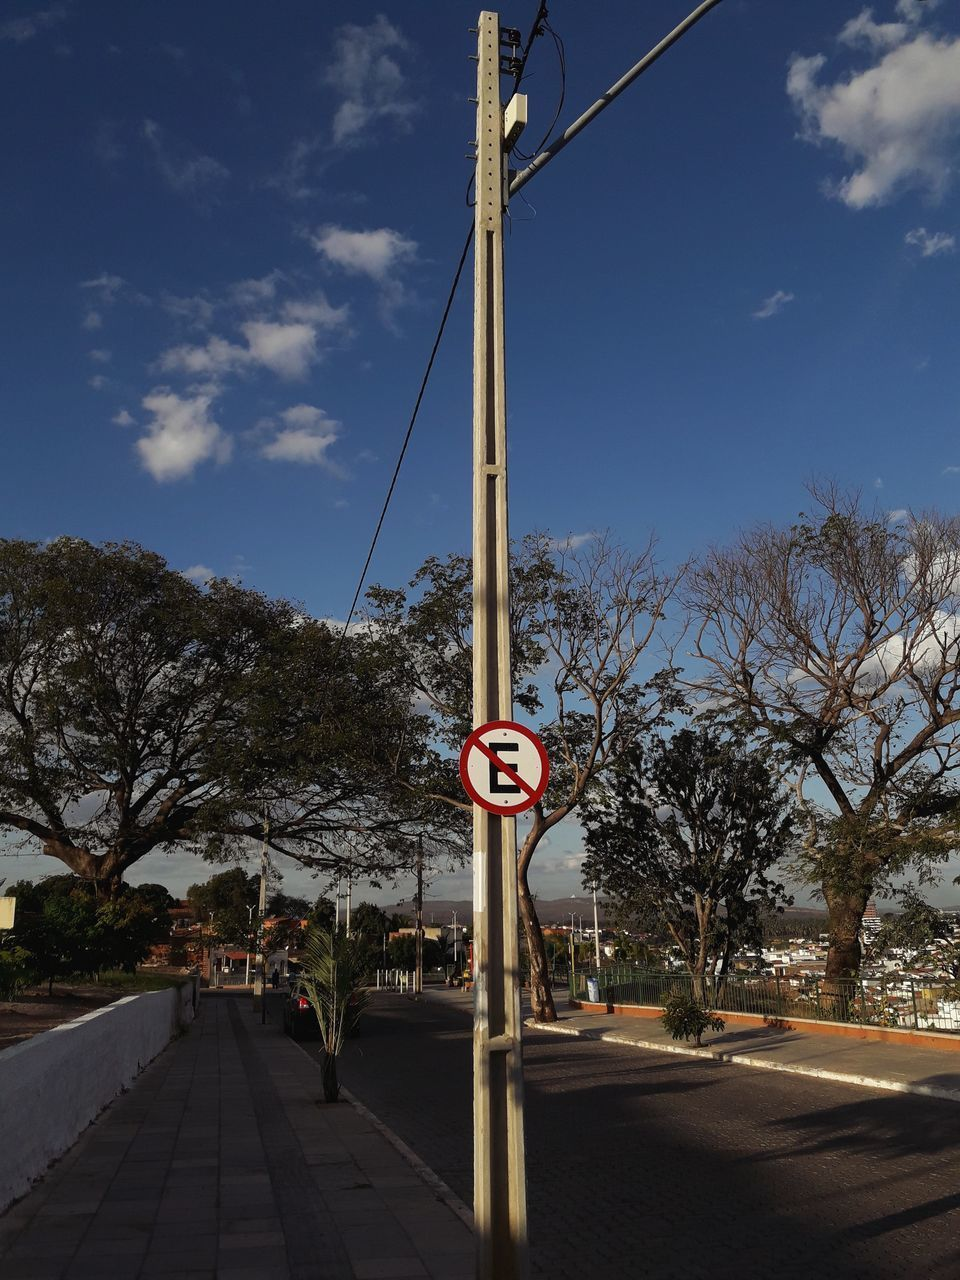 ROAD SIGN BY POLE AGAINST SKY